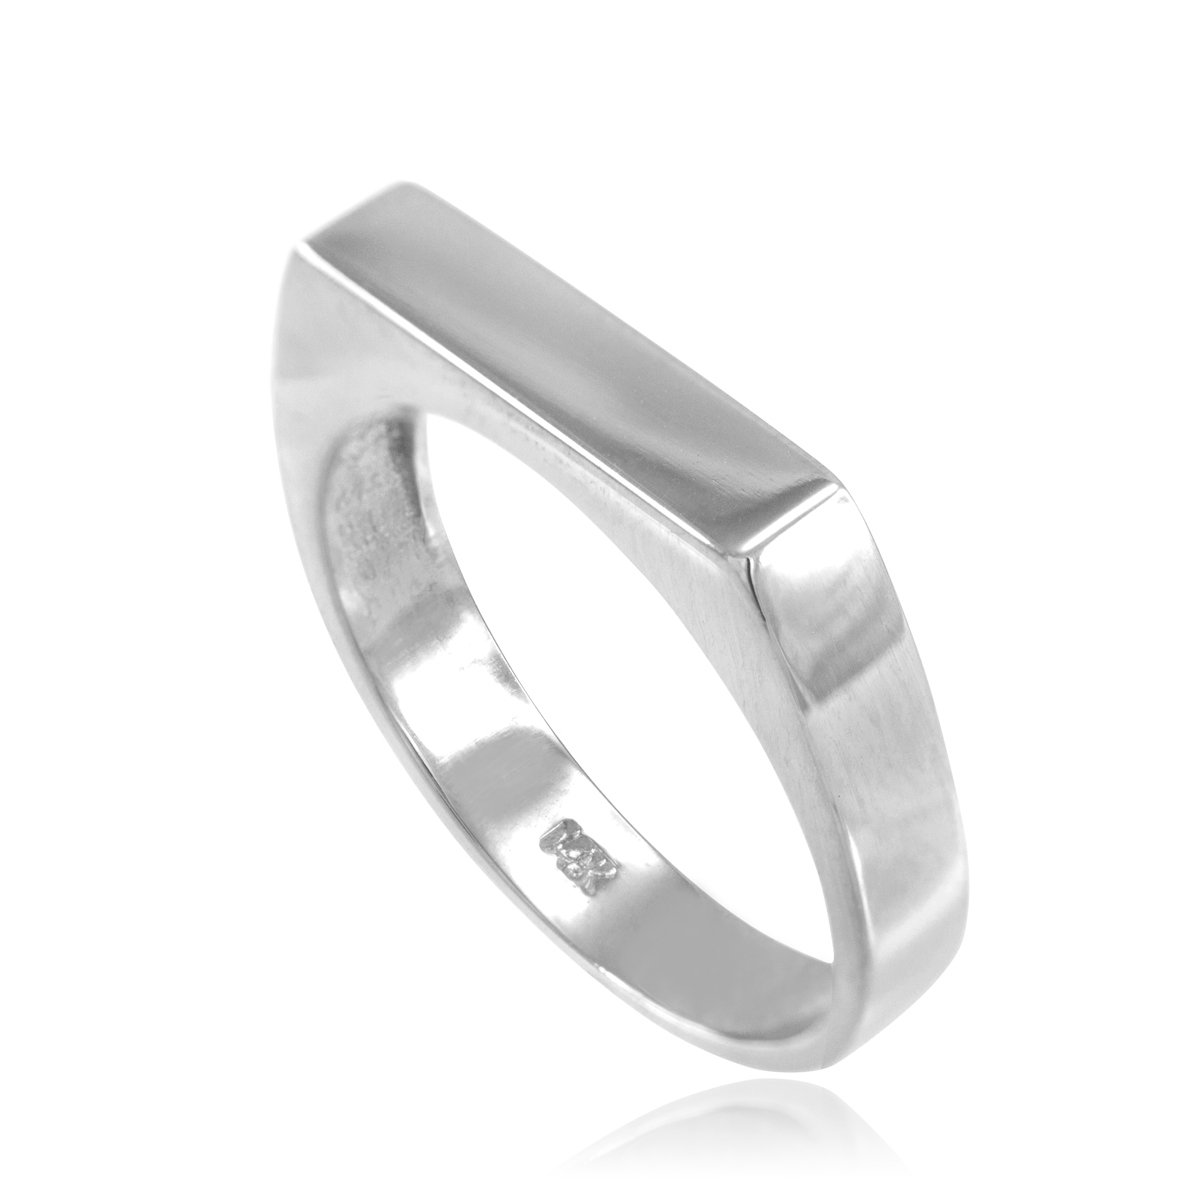 Stackable 14k White Gold Custom Engravable Flat Top Signet Ring (Size 9)